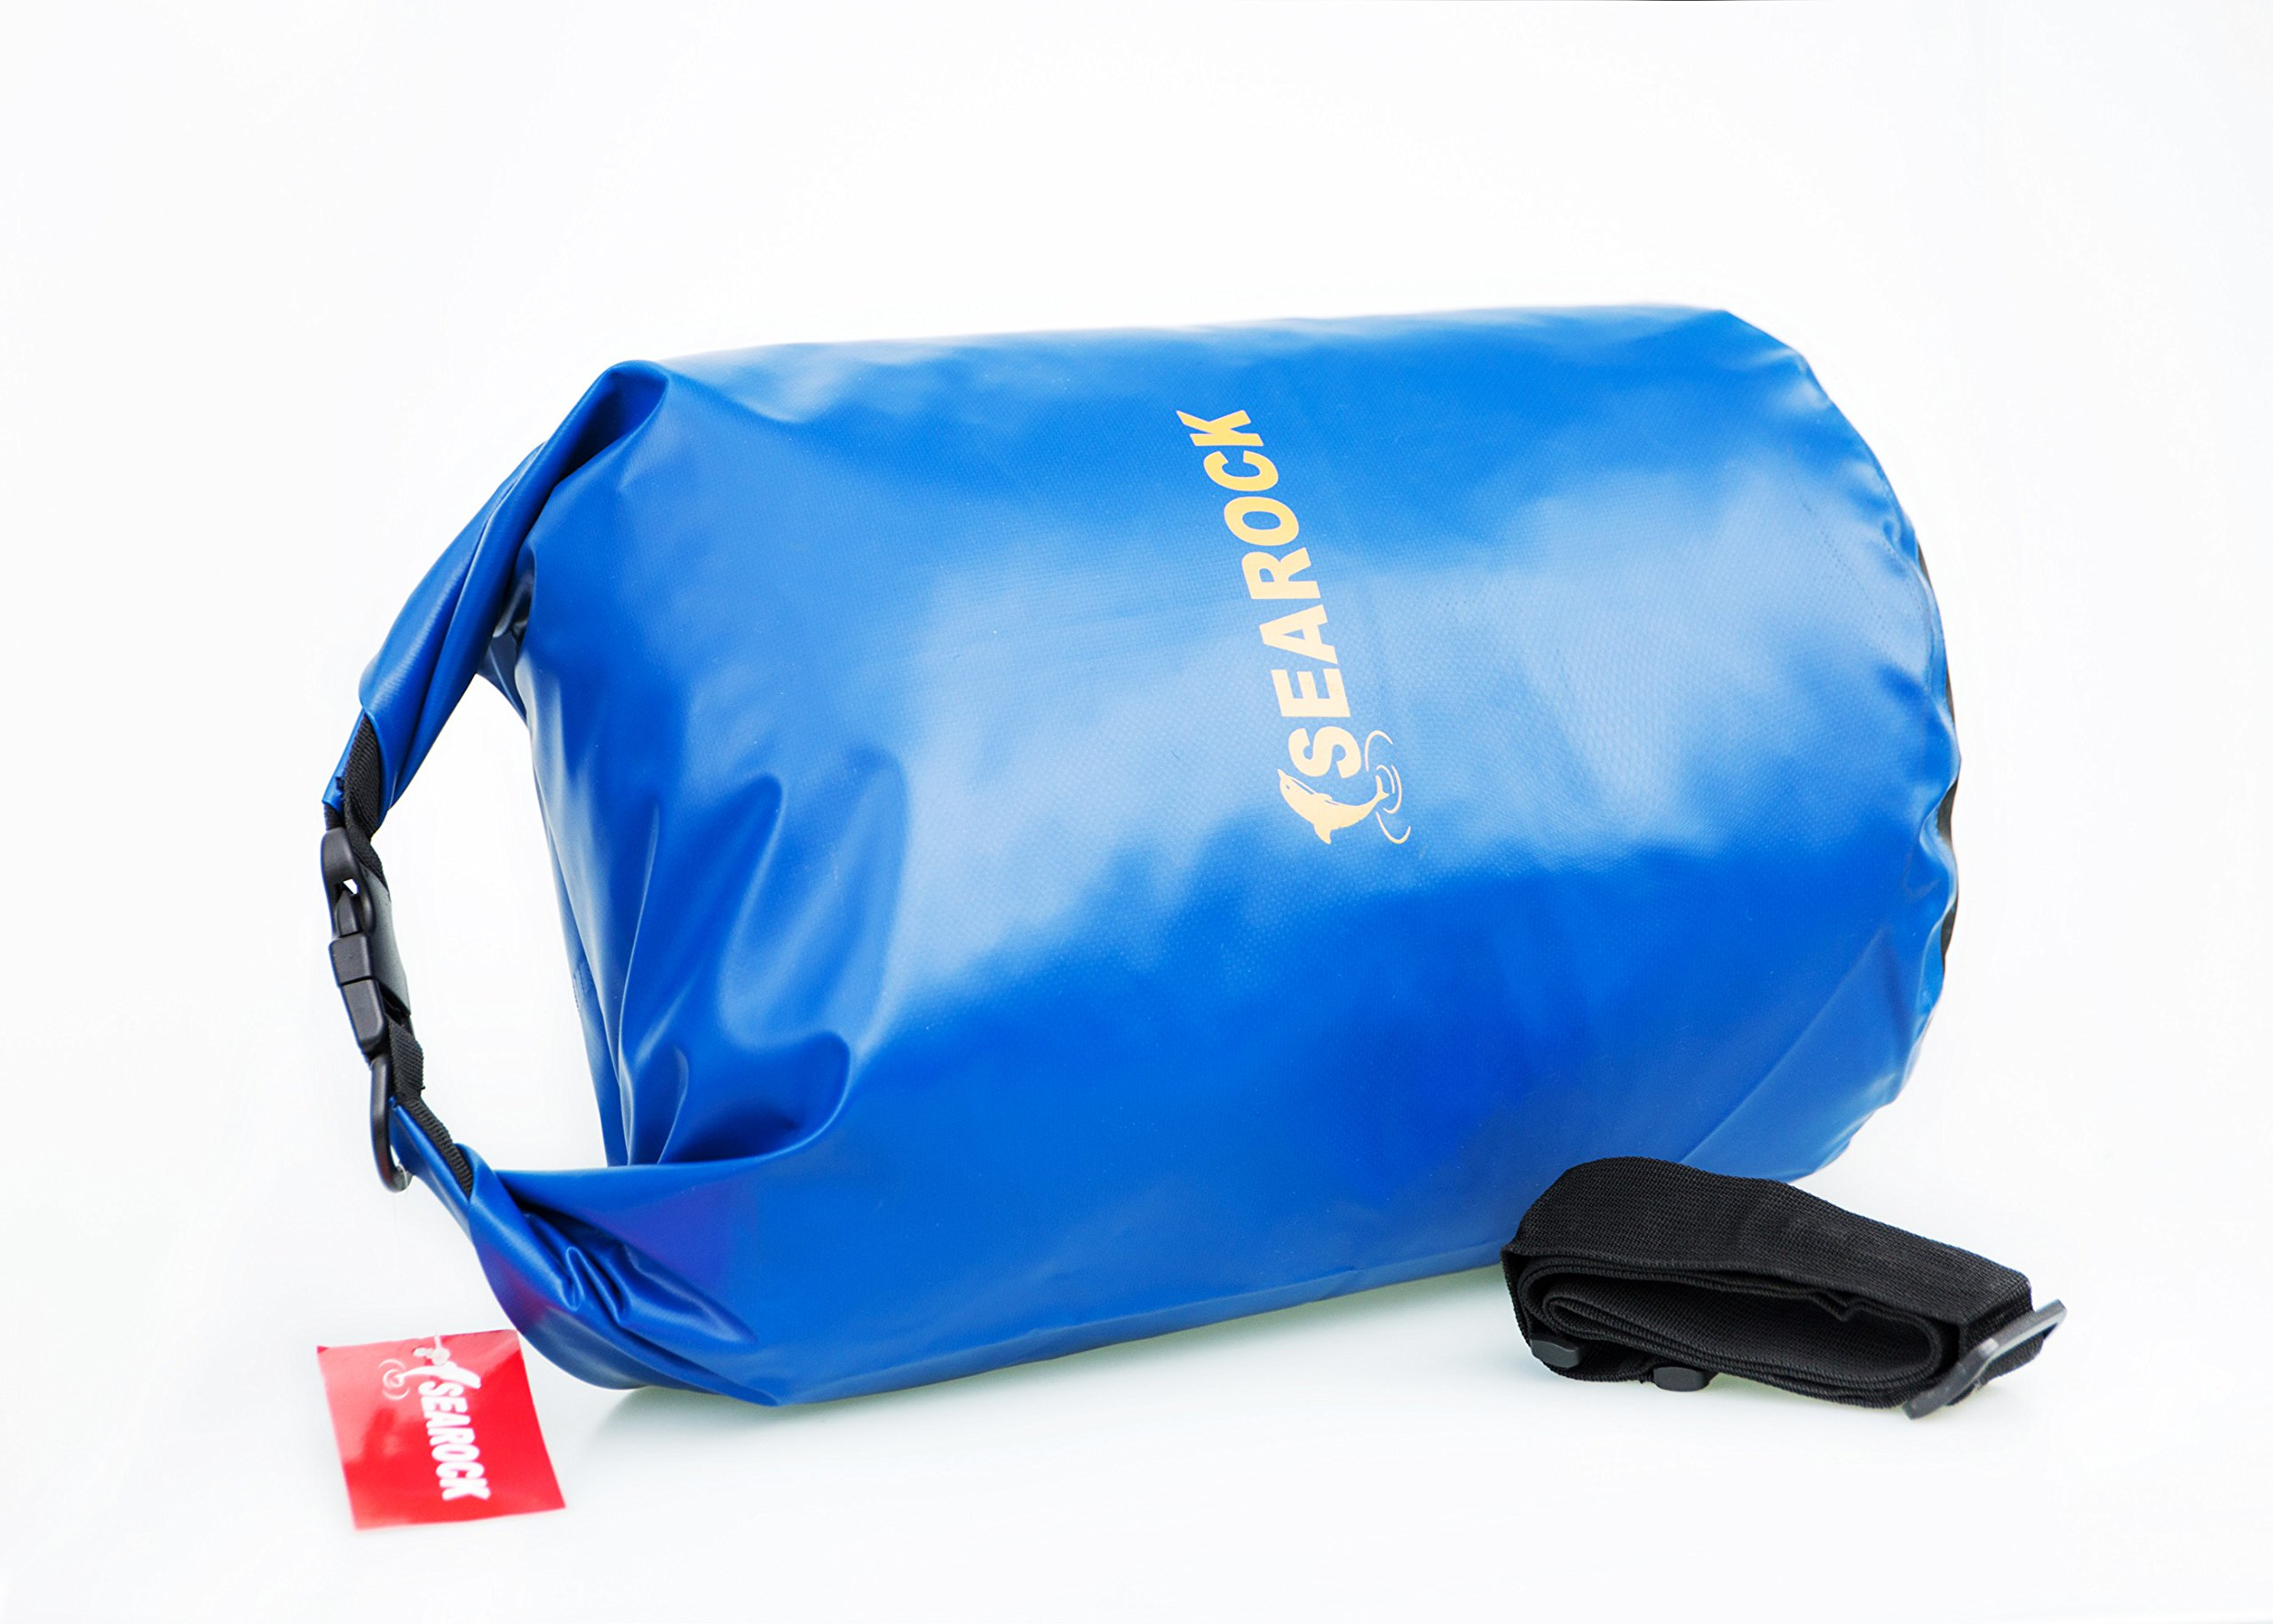 Stamo Waterproof Dry Bag 10 L/20L PVC Floating Bag Long Adjustable Shoulder Strap For kayaking, Boating , Hiking, Camping (blue, 20L)